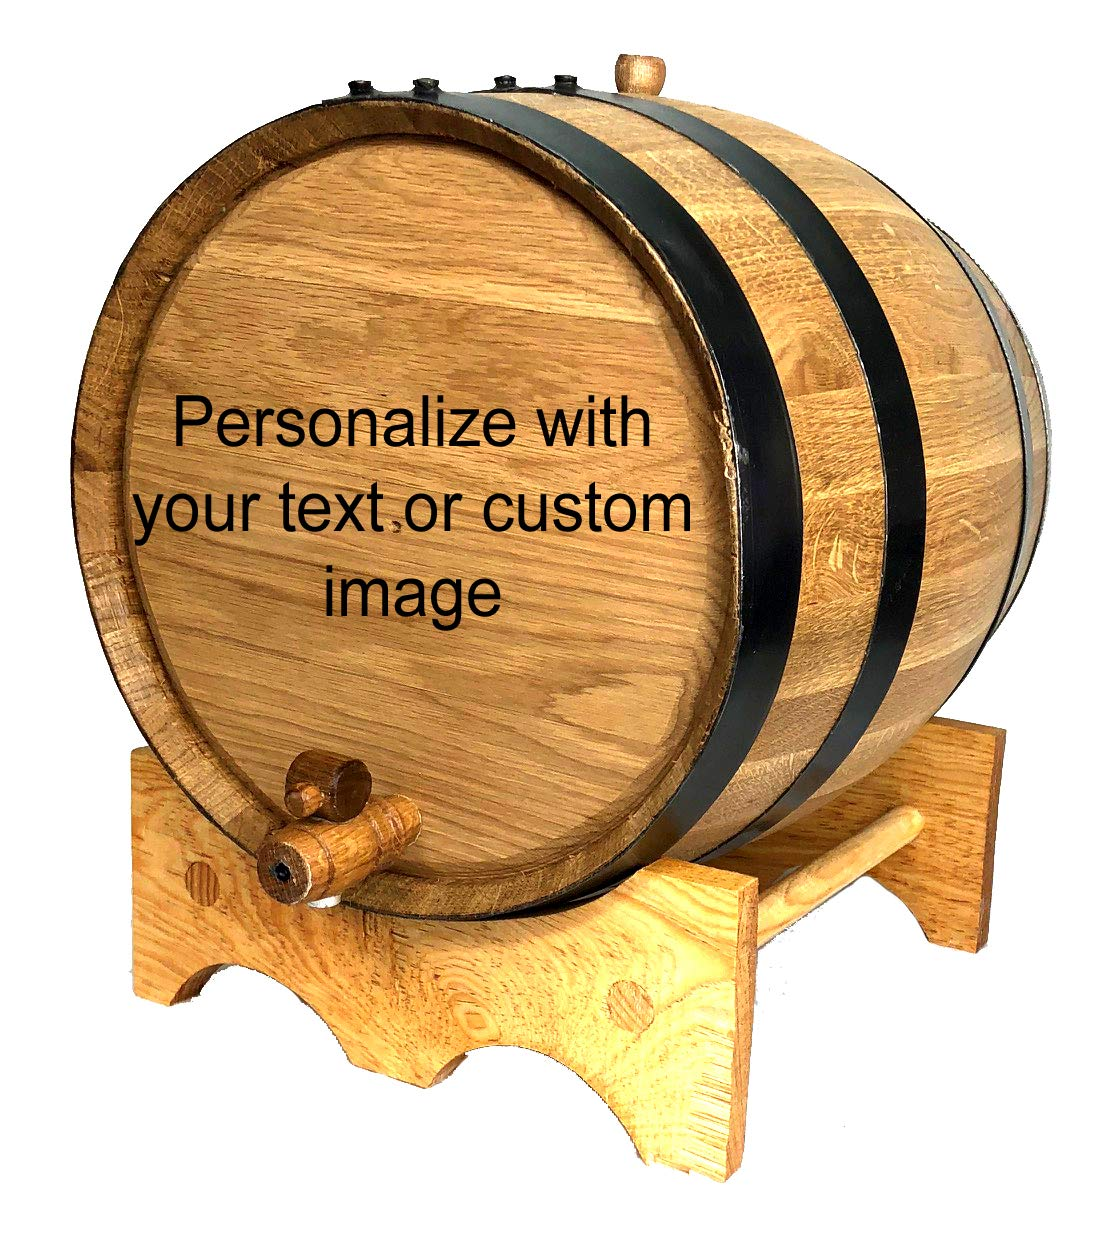 Custom Engraved 20 Liter Oak Barrels for Aging Whiskey, Rum, Tequila, Bourbon, Scotch and Wine (20 Liter) by Red Head Barrels